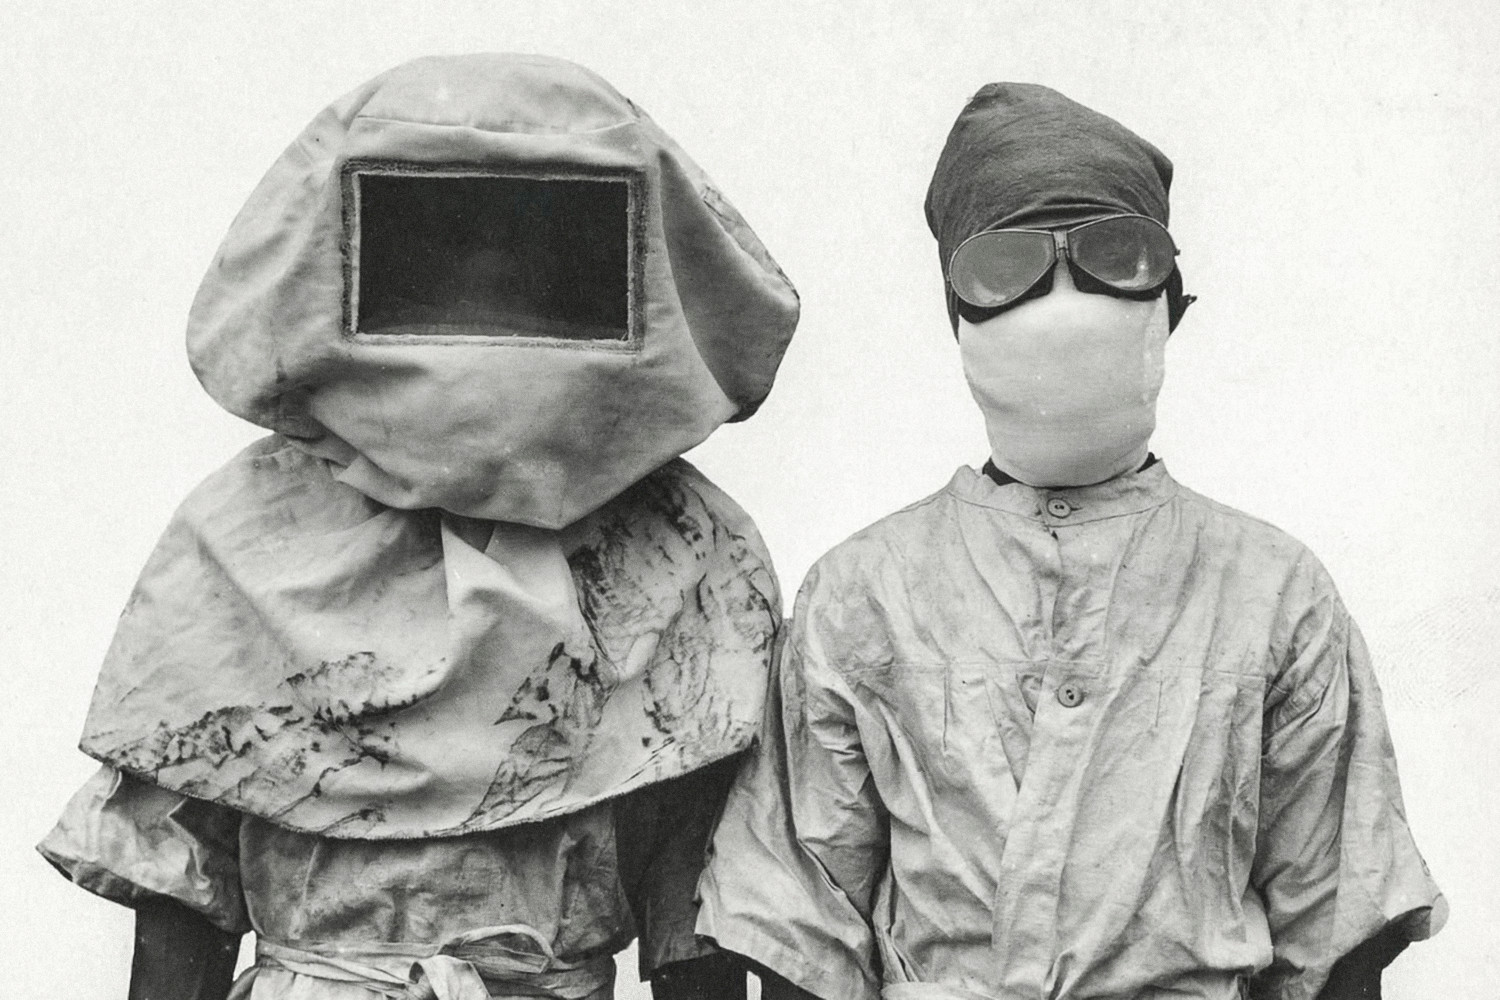 This photo shows two plague researchers in the Philippines wearing protective masks and uniforms. The Third Plague, which originated in Yunnan, China in 1855 was the last major pandemic of plague, but unlike the Black Death which claimed millions of lives in Europe, the Third Plague was mostly bubonic plague.  By the end 1912, Dr. Heiser, chief quarantine officer, and director of health of the Philippine Islands, reported 17 cases of plague in Manila, with 15 deaths. The cases were traced to thefreight warehouse of the Manila & Dagupan Railway Co. where several dead rats were discovered.